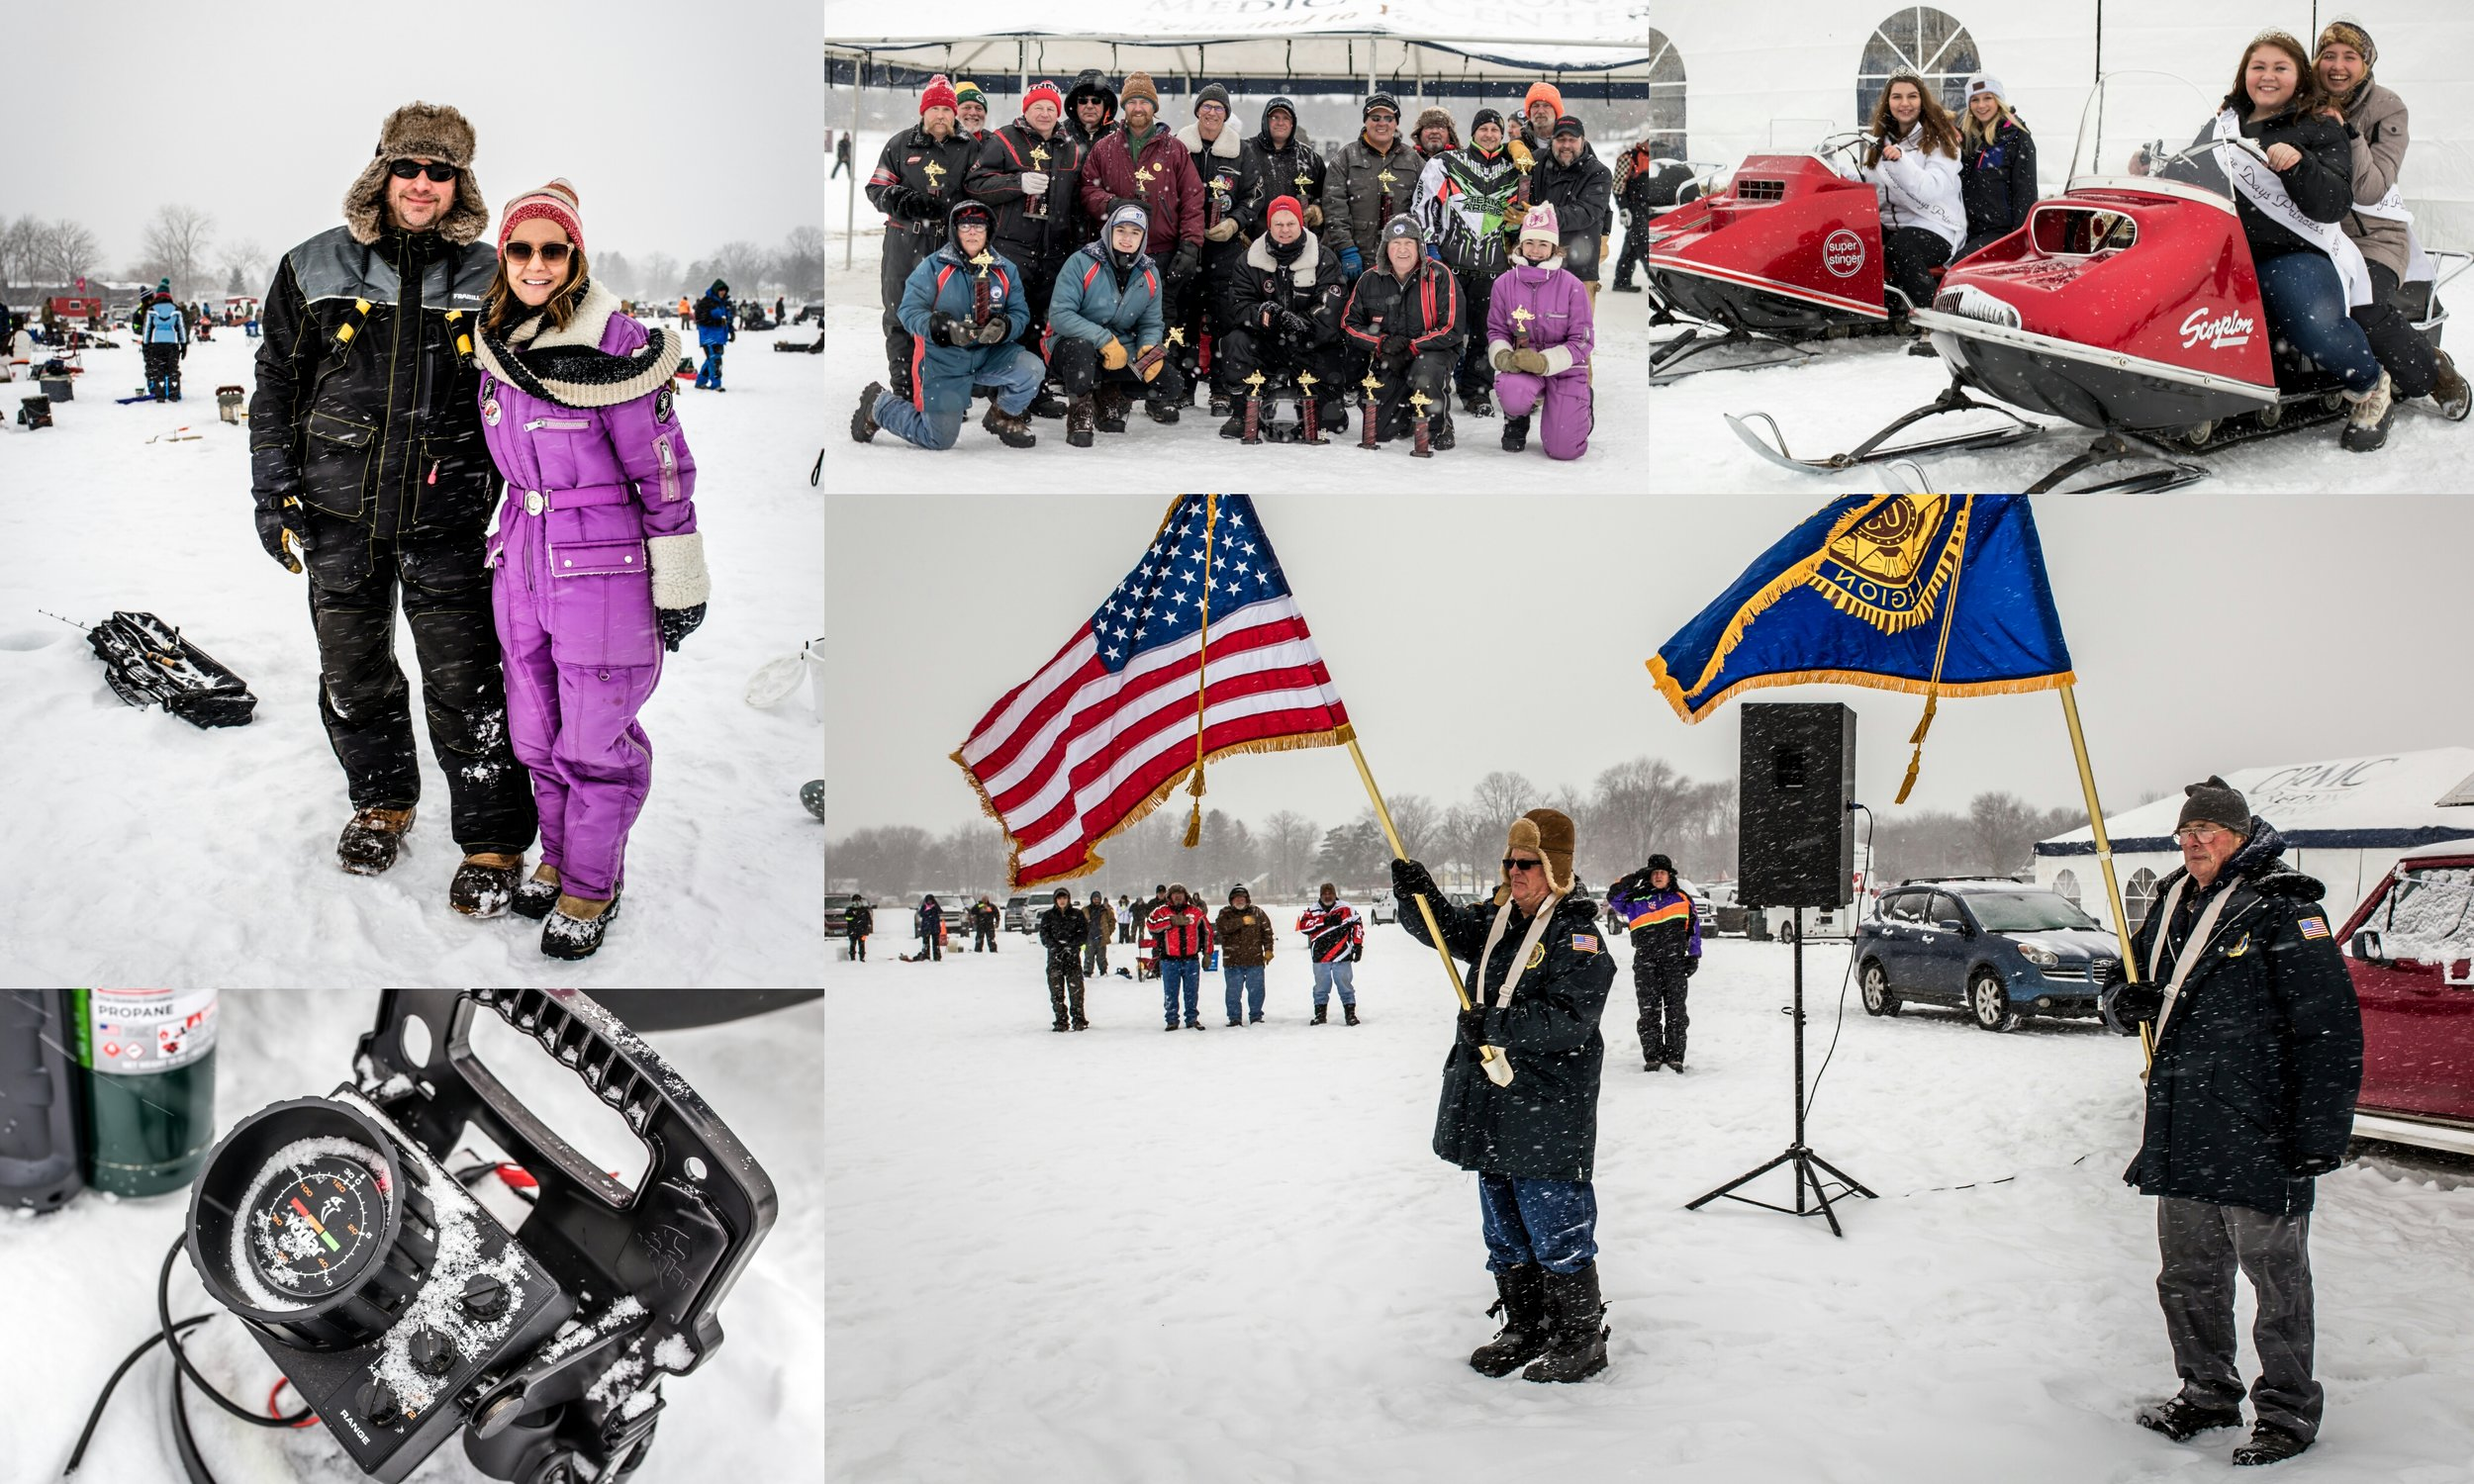 Highlights from past Cuyuna Lakes Annual Ice Fishing Contest & Scorpion Homecoming events